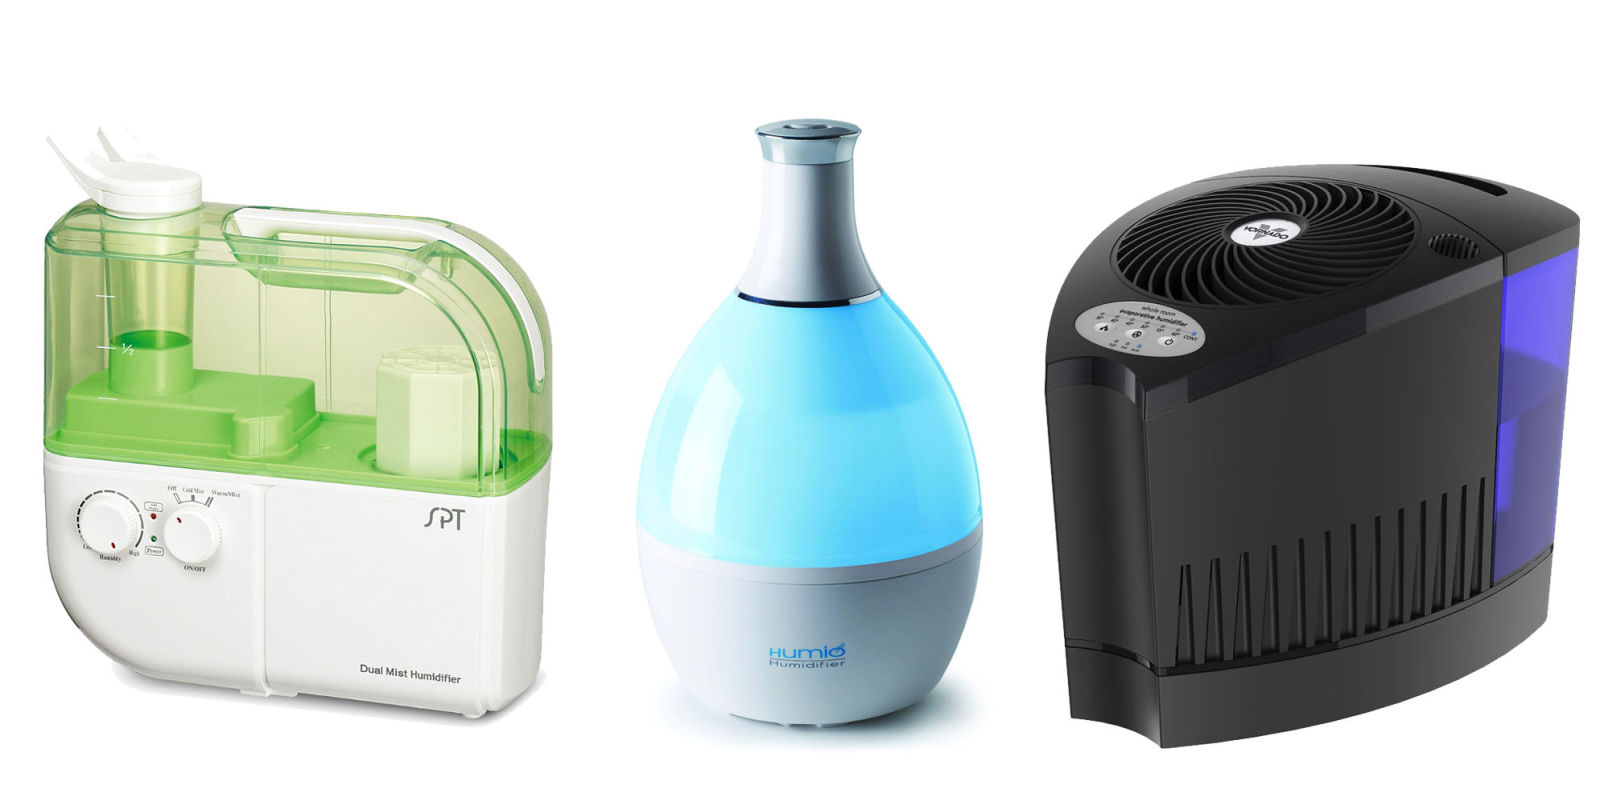 2016 Single Room Humidifiers Under 100 Cheap Cool Mist Humidifiers